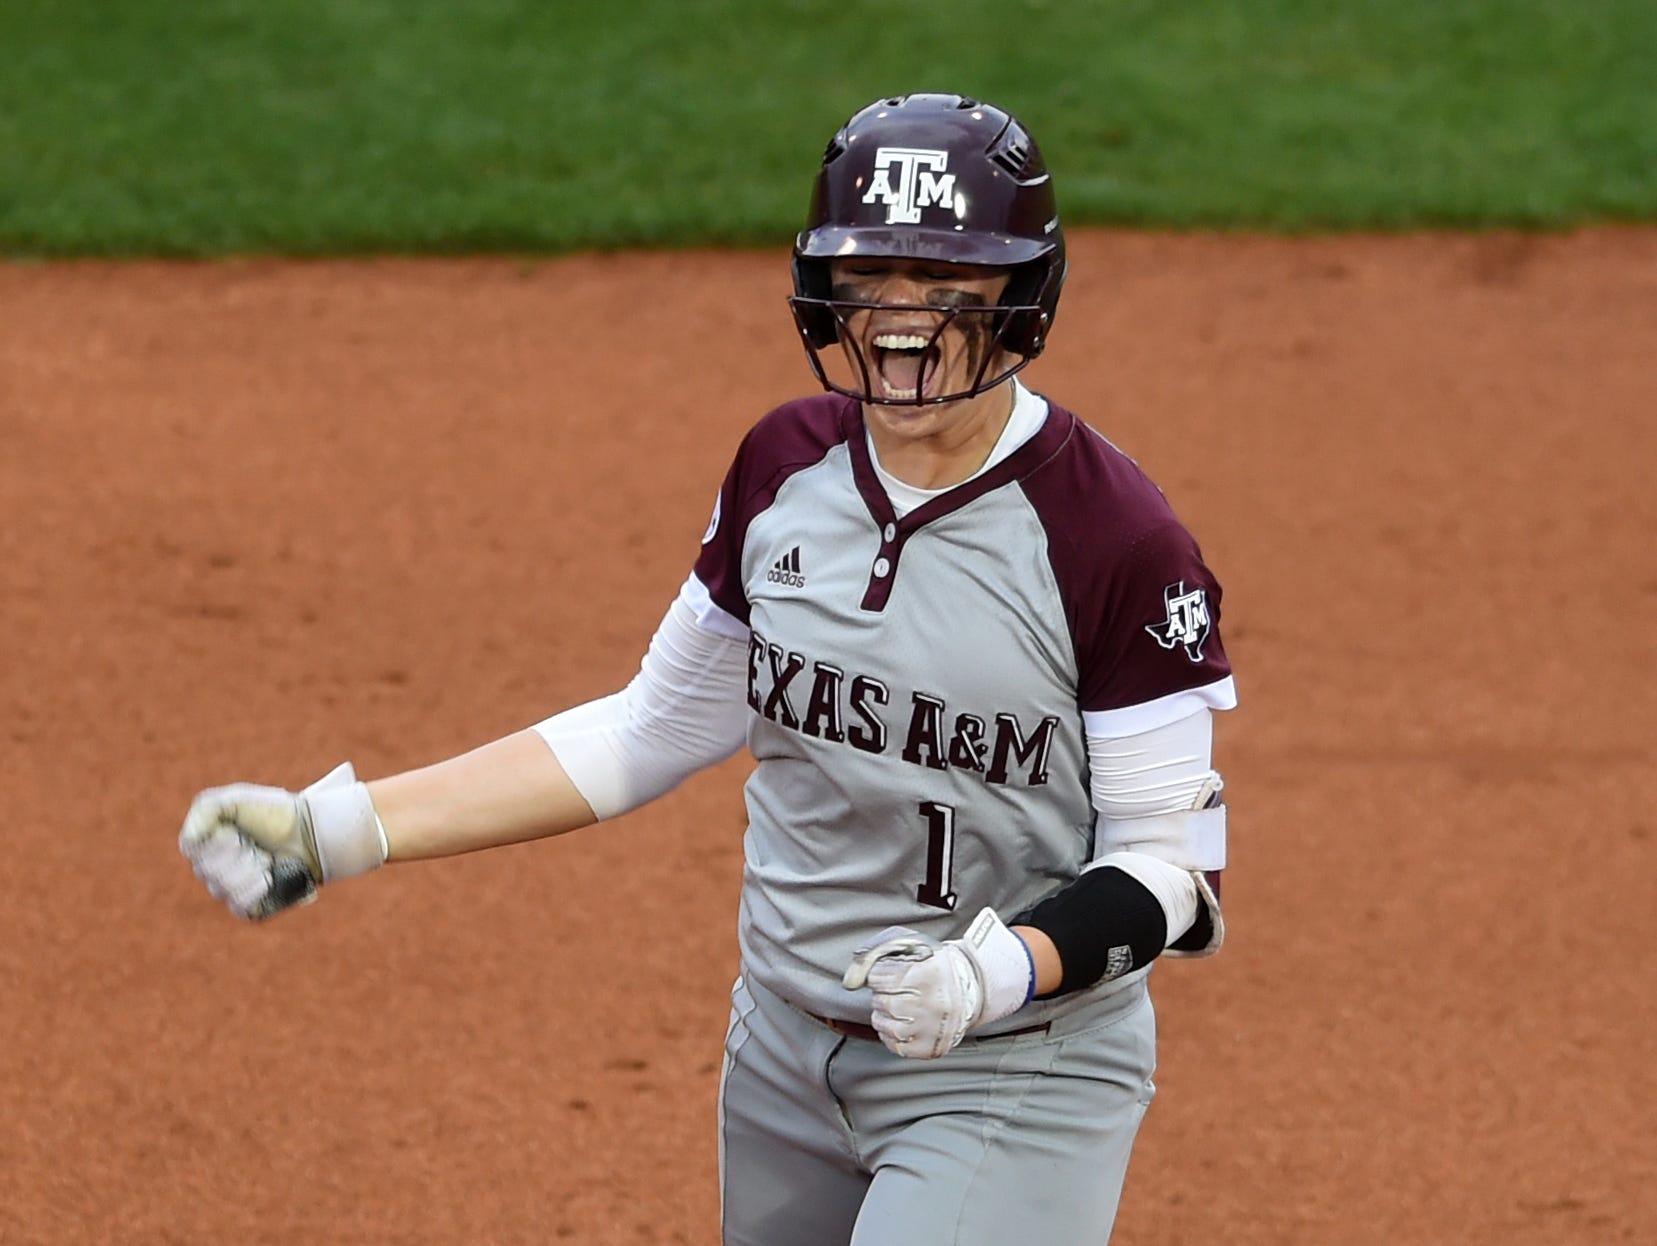 Texas A&M's Samantha Show (1) celebrates on second base during an NCAA Super Regional game between Tennessee and Texas A&M at Sherri Parker Lee Stadium on Saturday, May 27, 2017. Texas A&M defeated Tennessee 6-5.